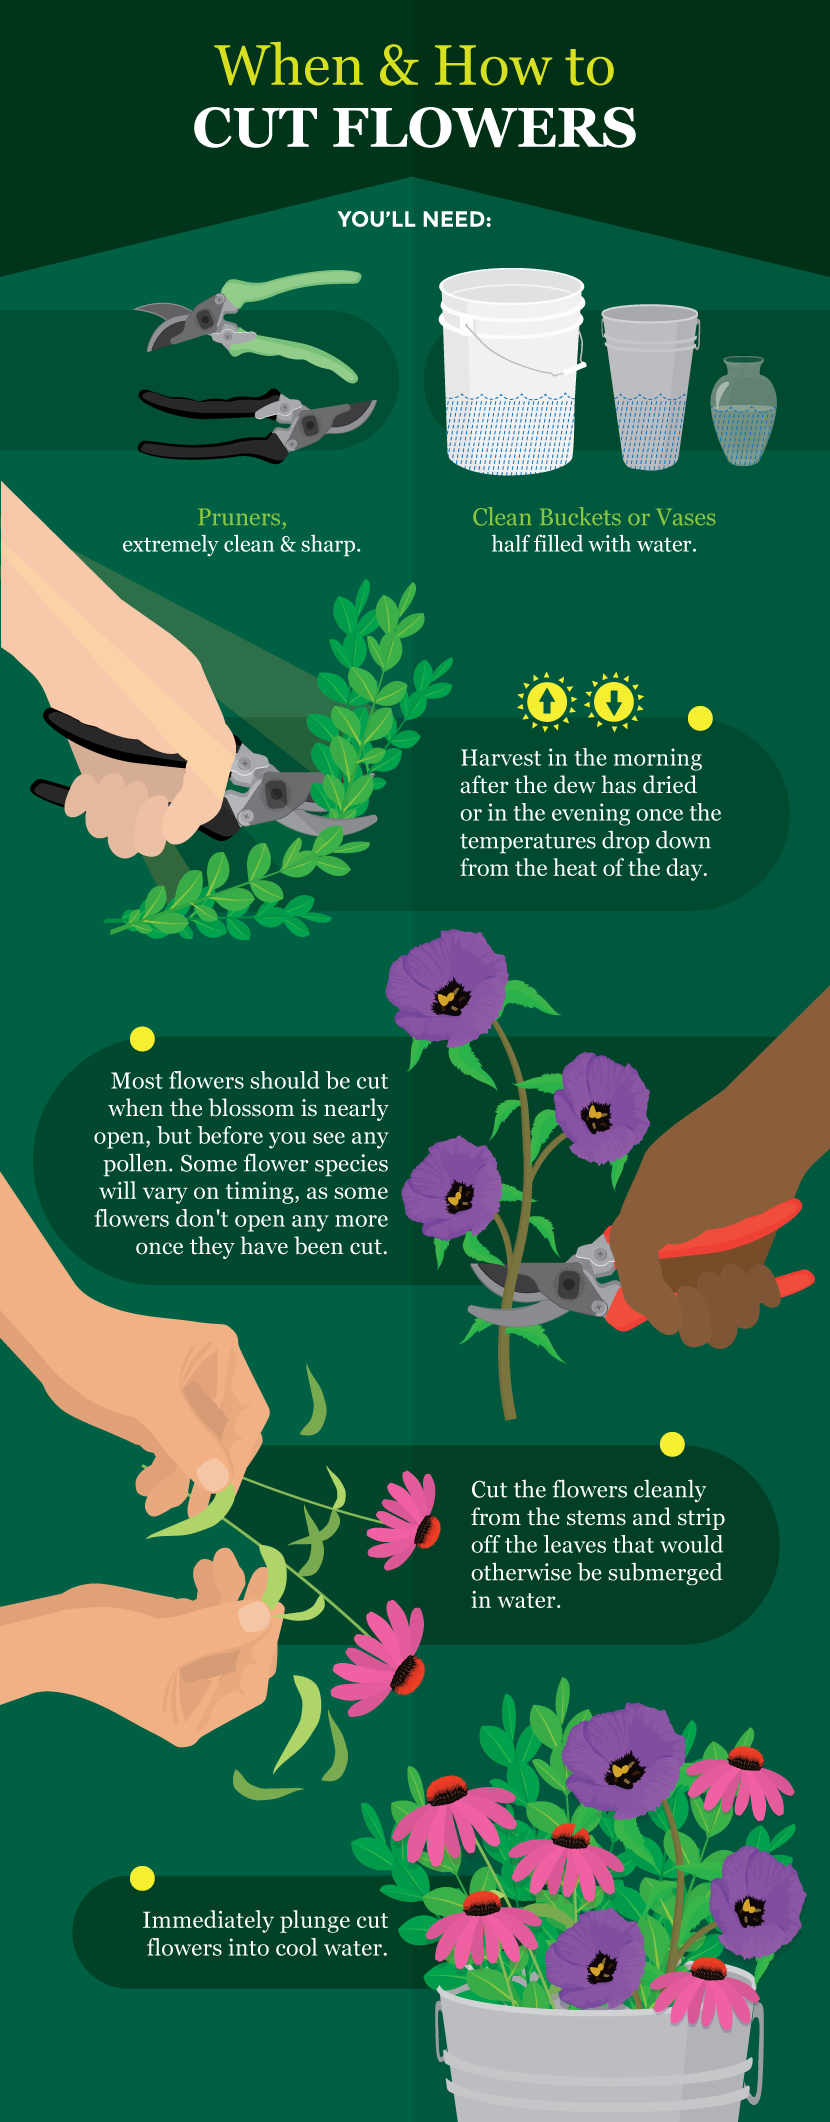 When and How to Cut Flowers - A Guide to Growing Your Own Cutting Flowers